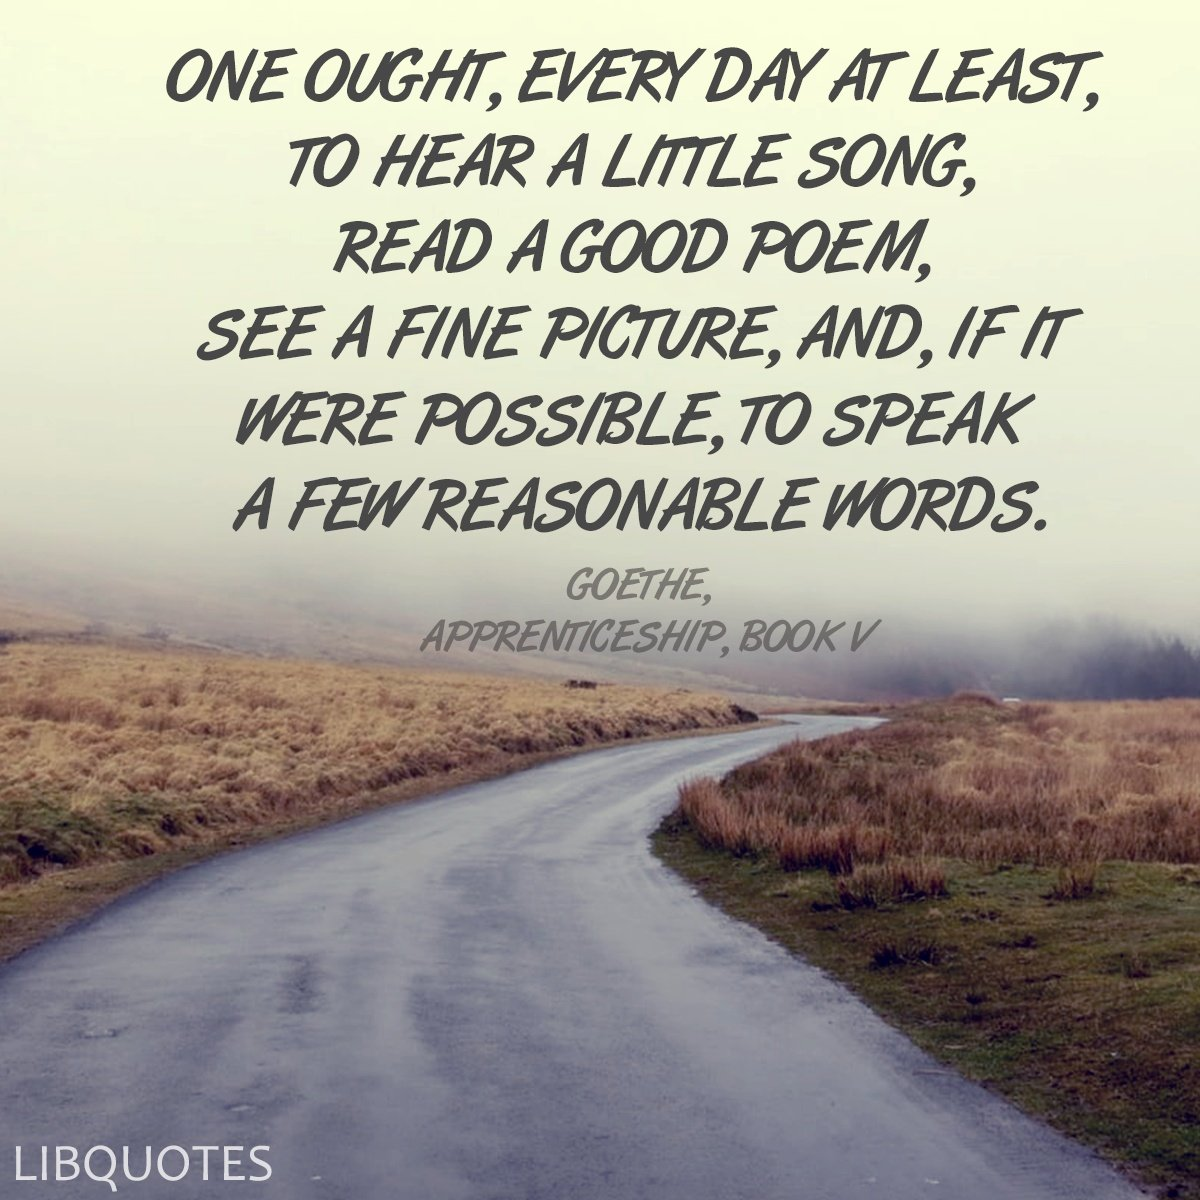 One ought, every day at least, to hear a little song, read a good poem, see a fine picture, and, if it were possible, to speak a few reasonable words.